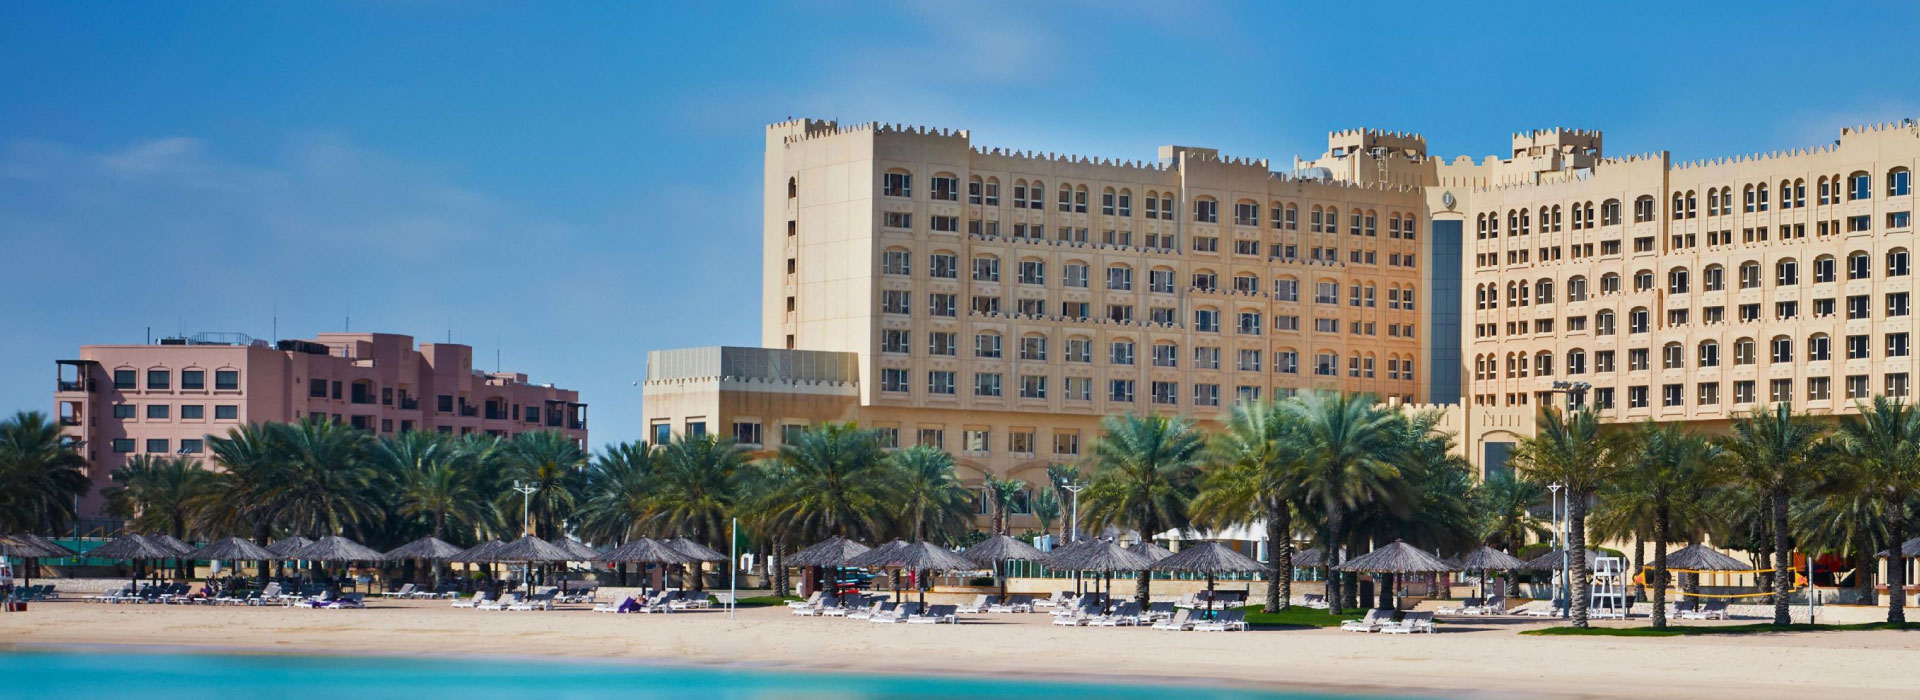 Intercontinental Hotel Doha, Qatar